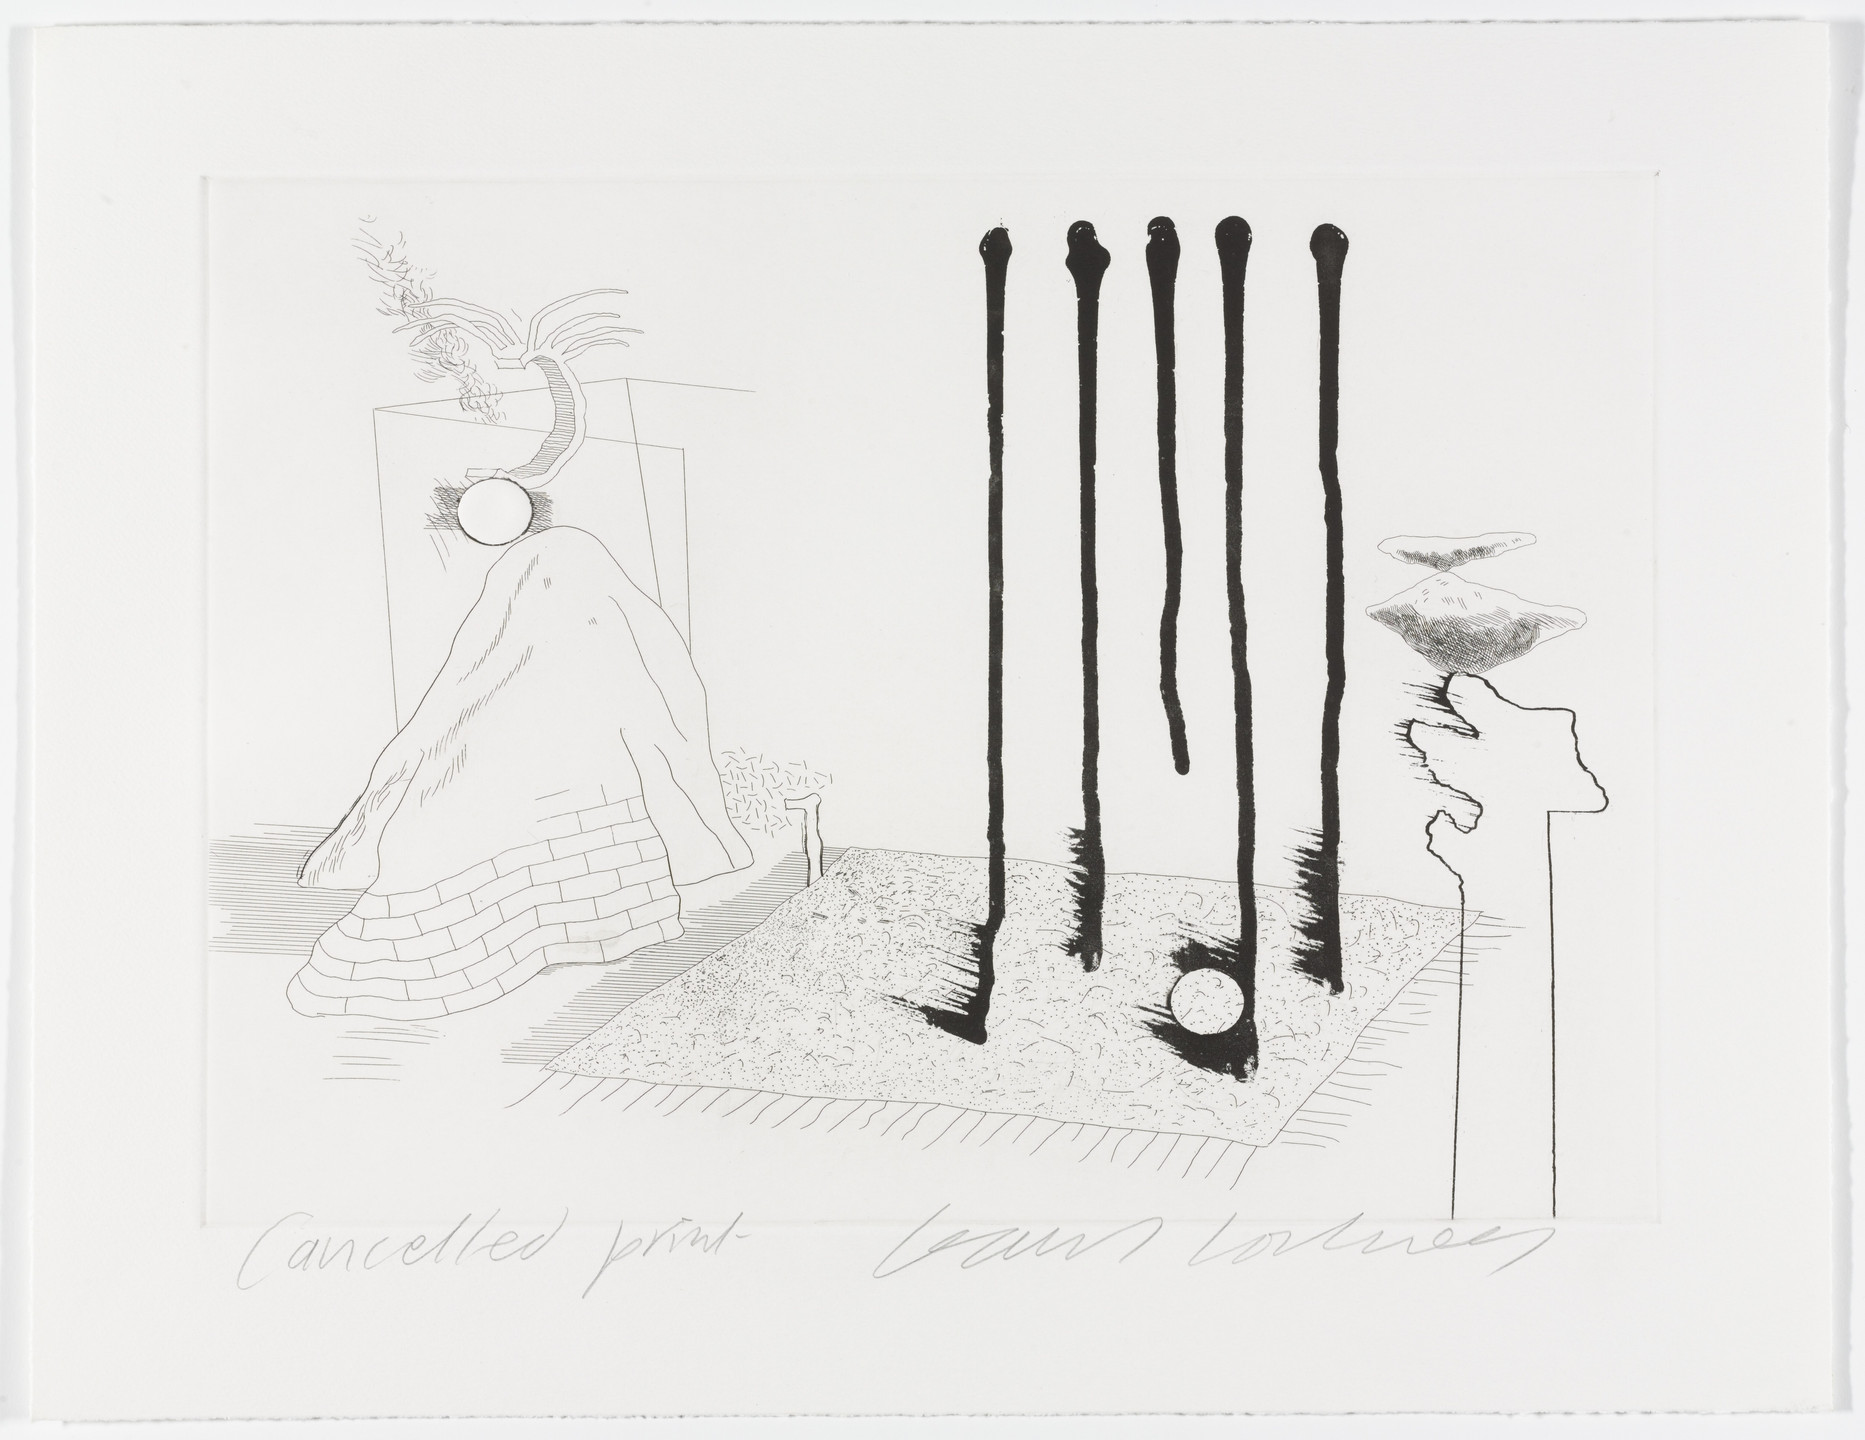 David Hockney. Cancellation proof for I Say They Are from The Blue Guitar. 1977